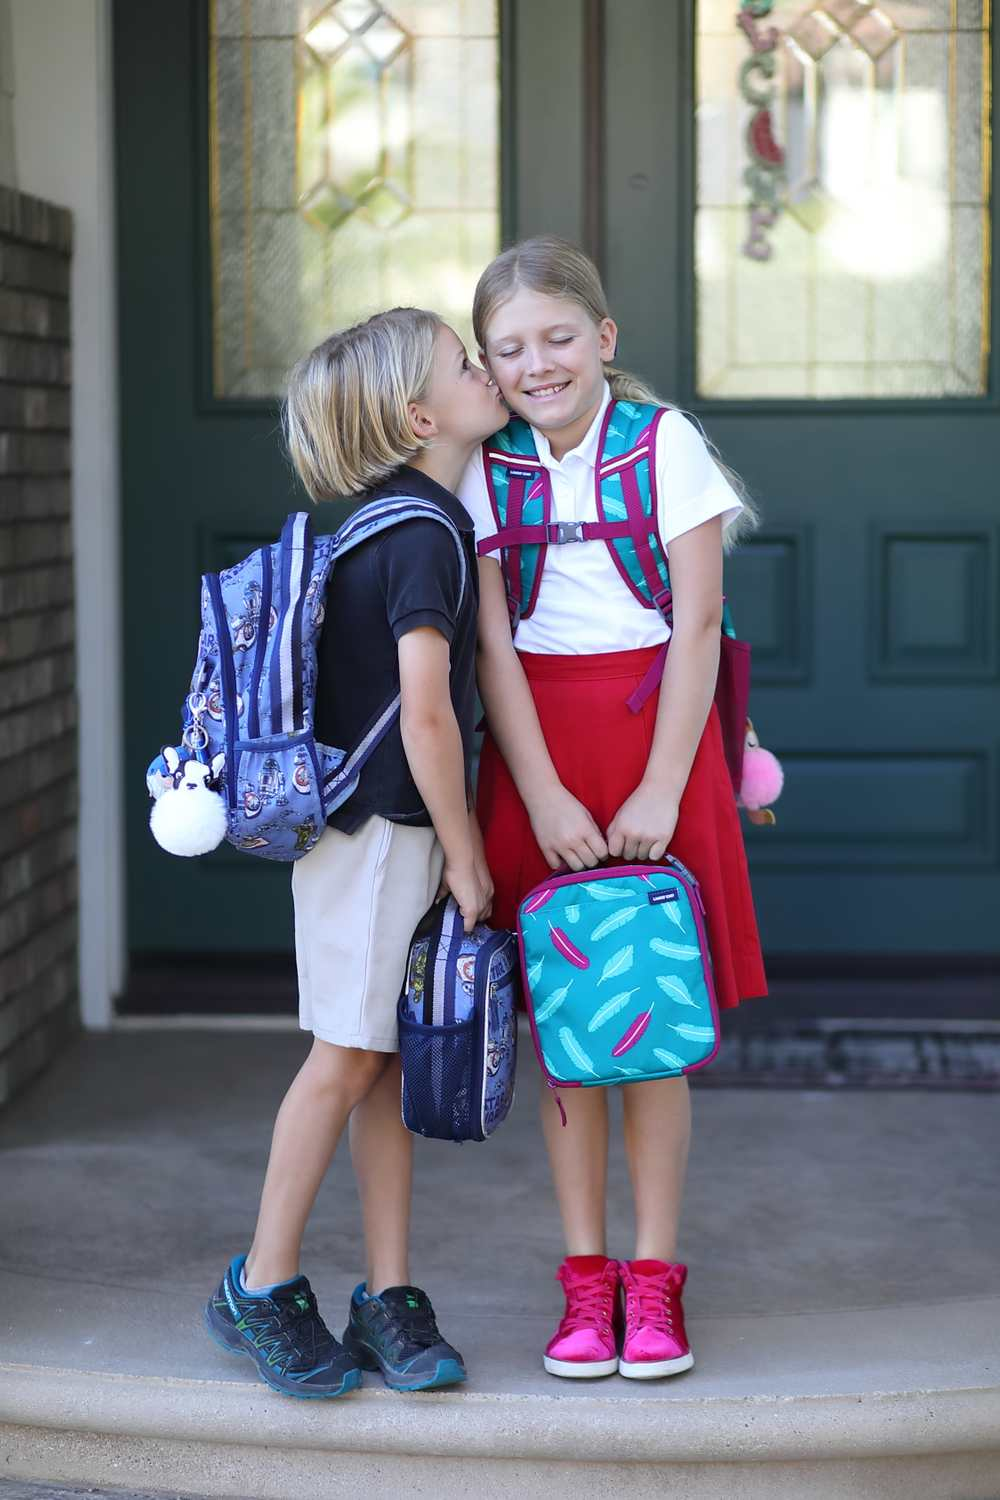 FirstDaySchool2019AIMG_8477.JPG